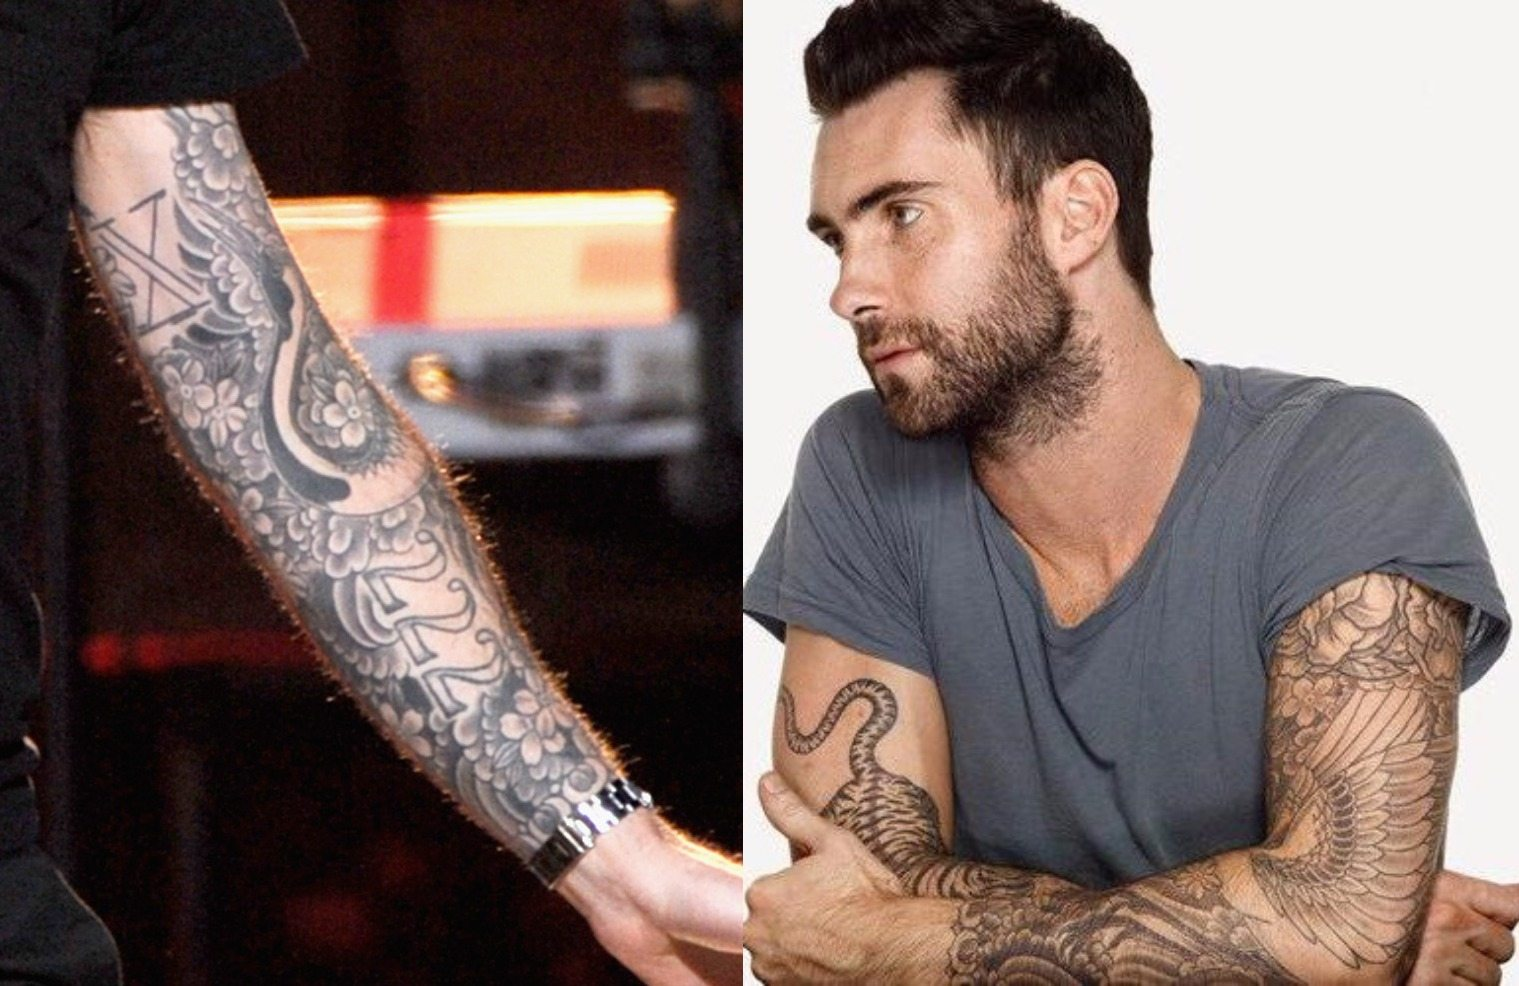 Adam Levine Tattoos Brother And House Ideas And Designs